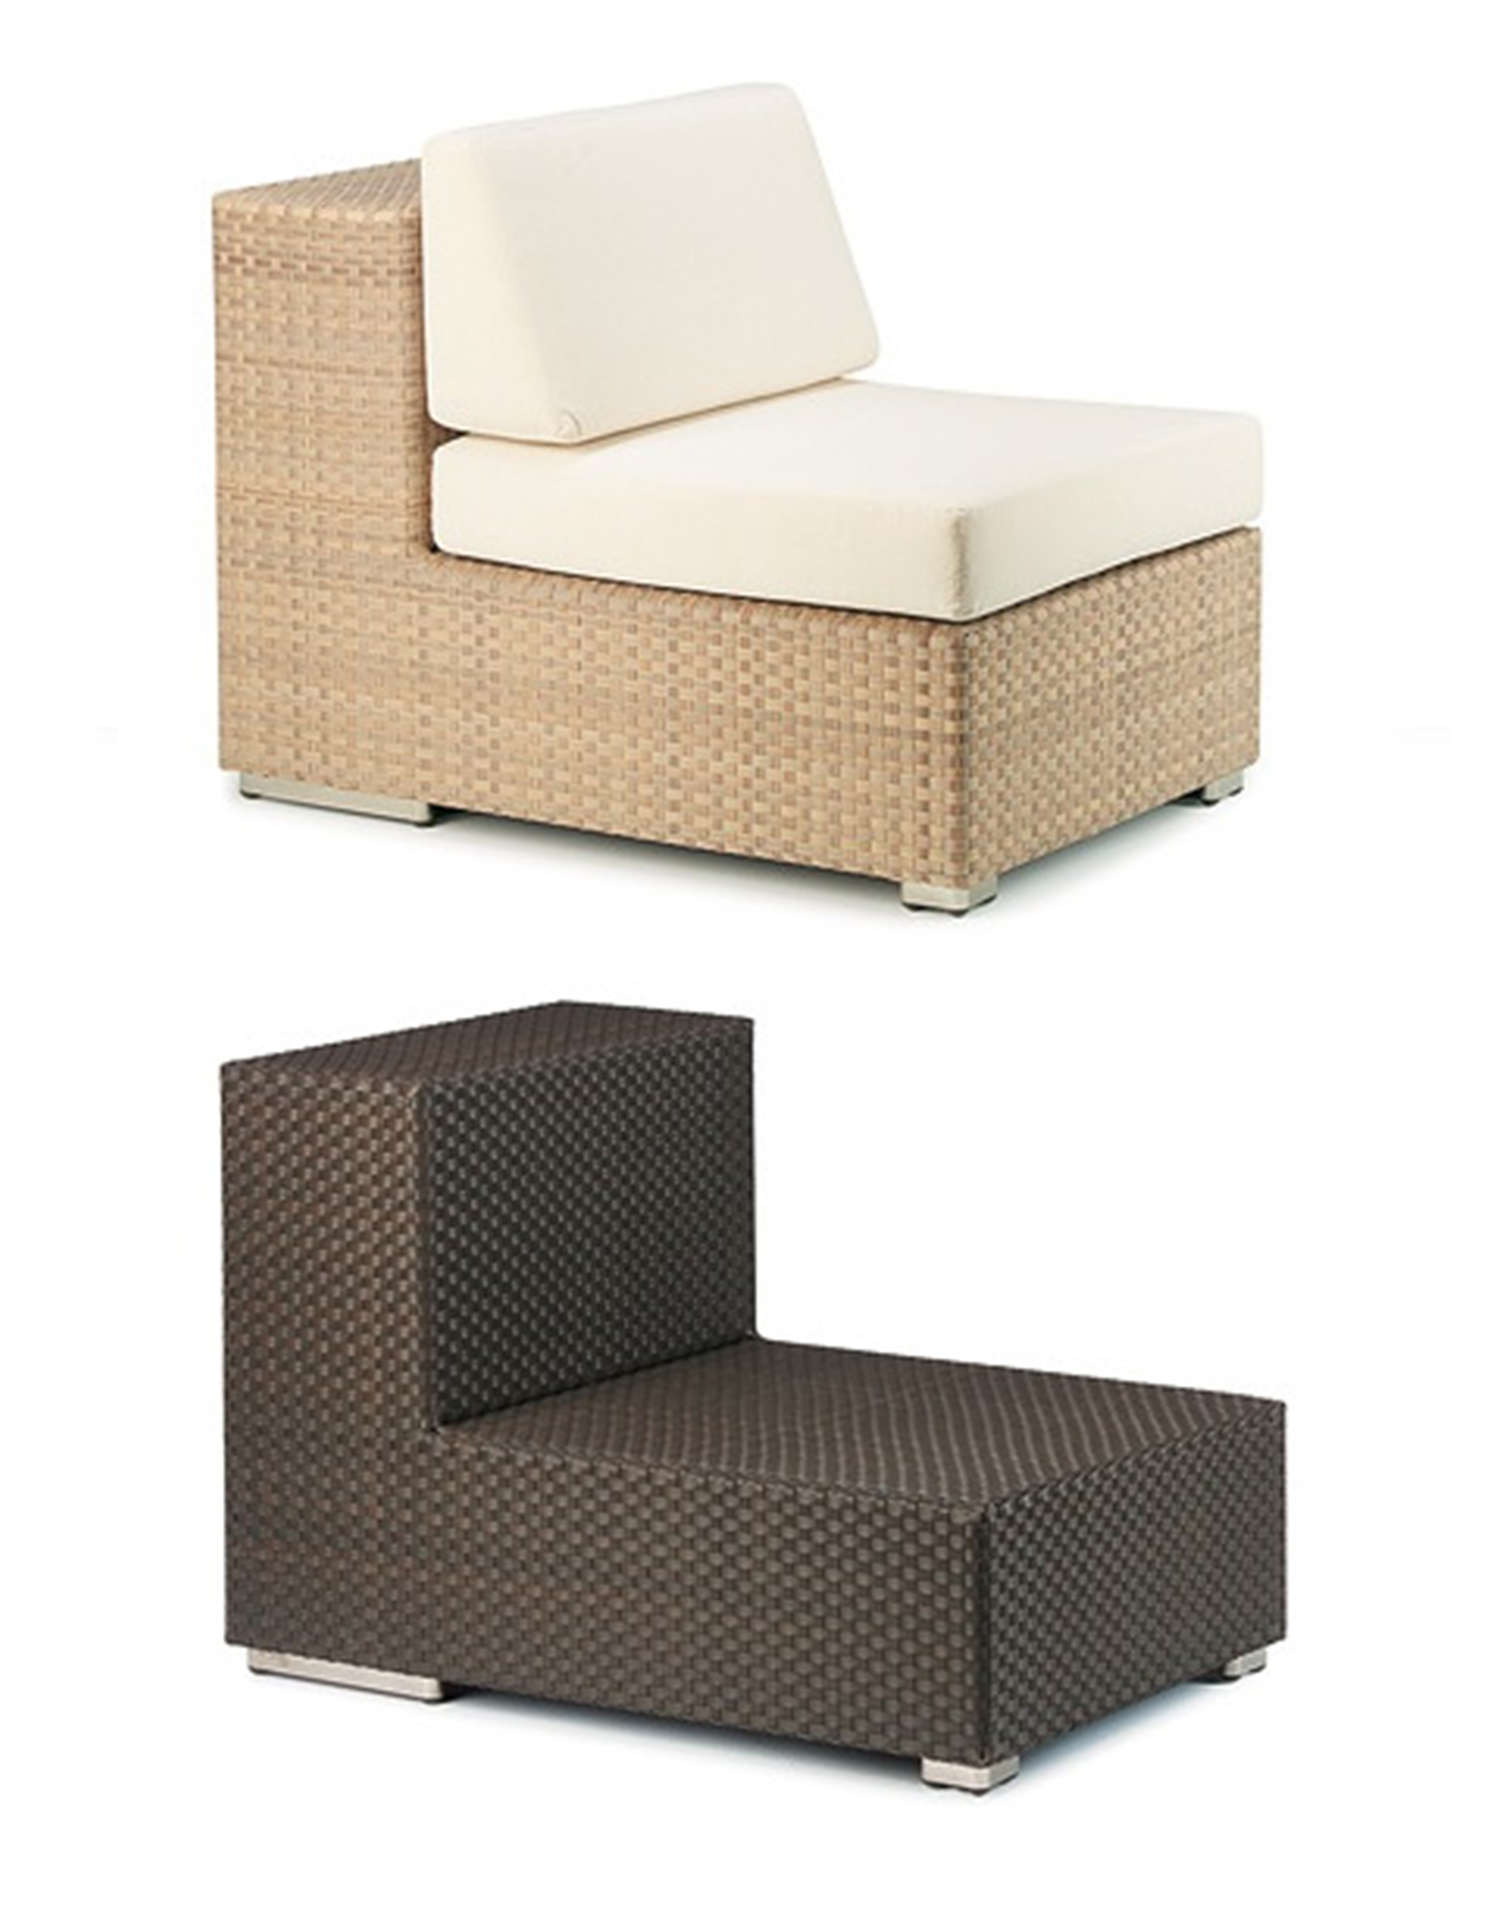 gartenmoebel set rattan guenstig polyrattan esstisch cube gartenm bel design rattan abelia. Black Bedroom Furniture Sets. Home Design Ideas